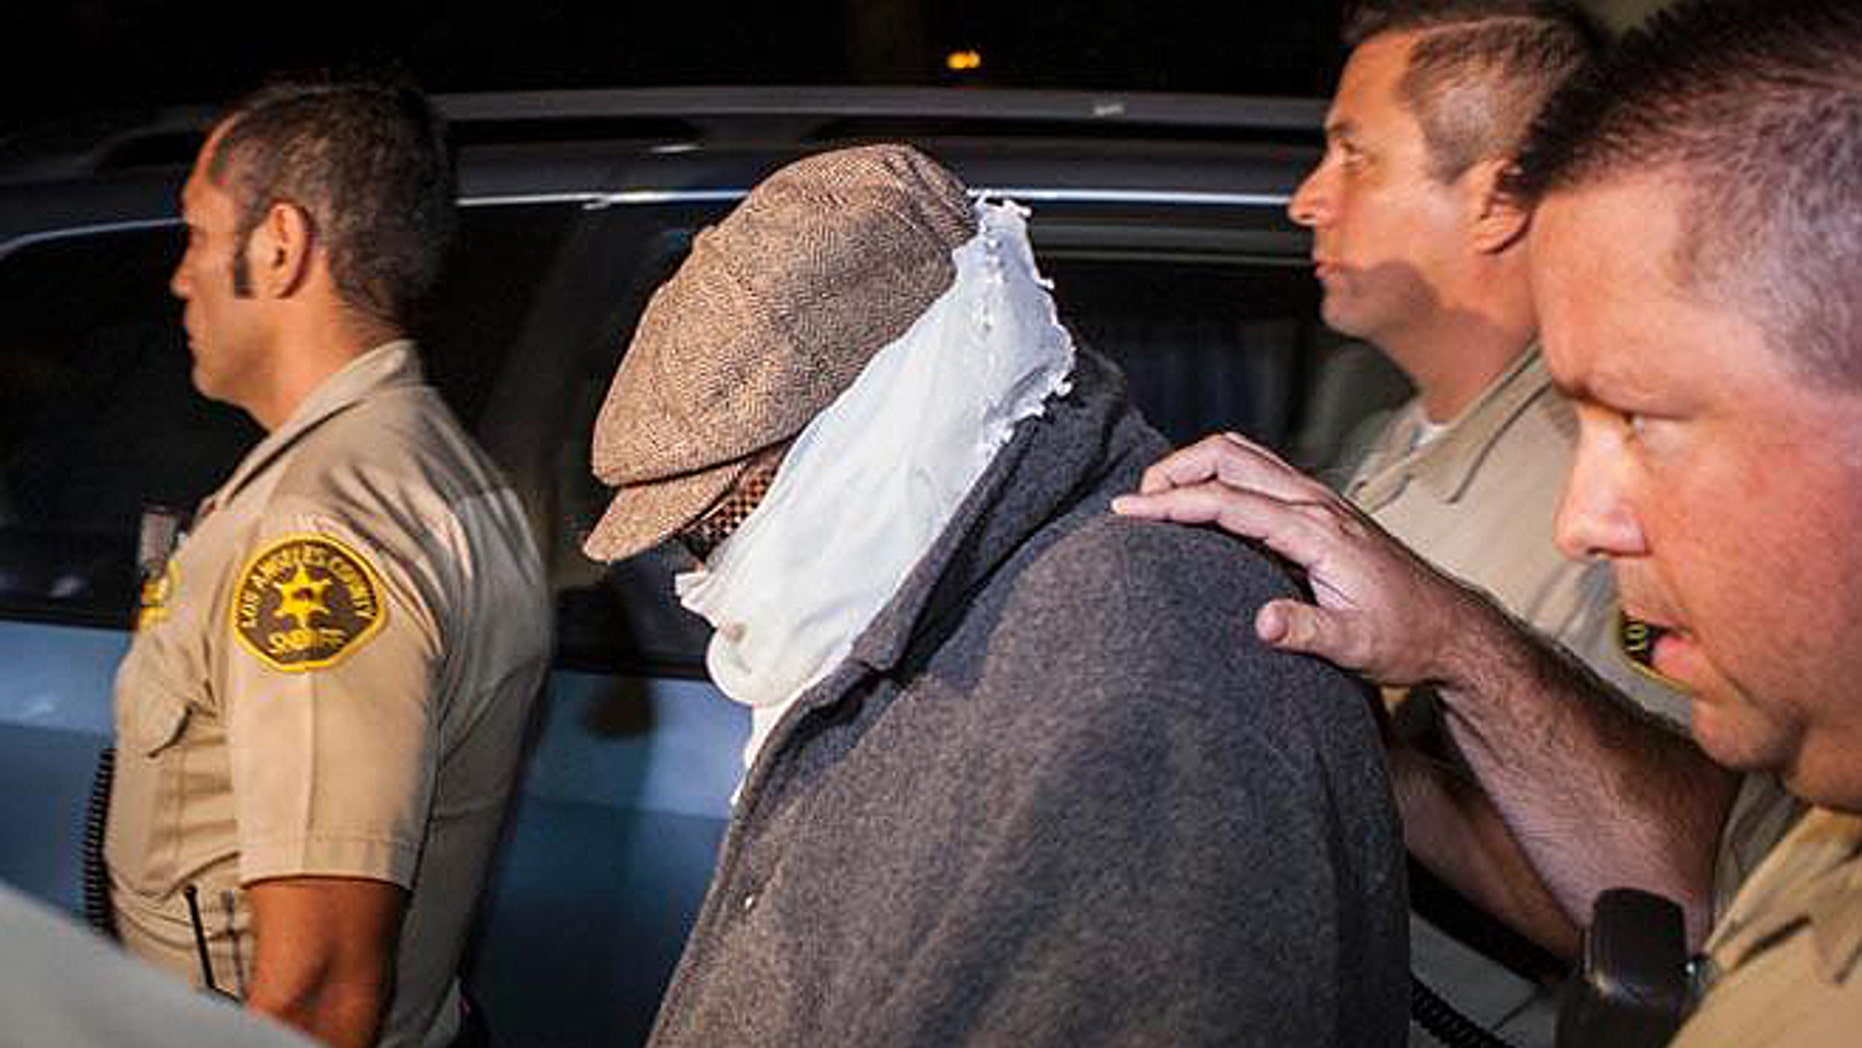 Nakoula, seen here in 2013 being escorted out of his home in Cerritos, Calif., lives under constant threat.